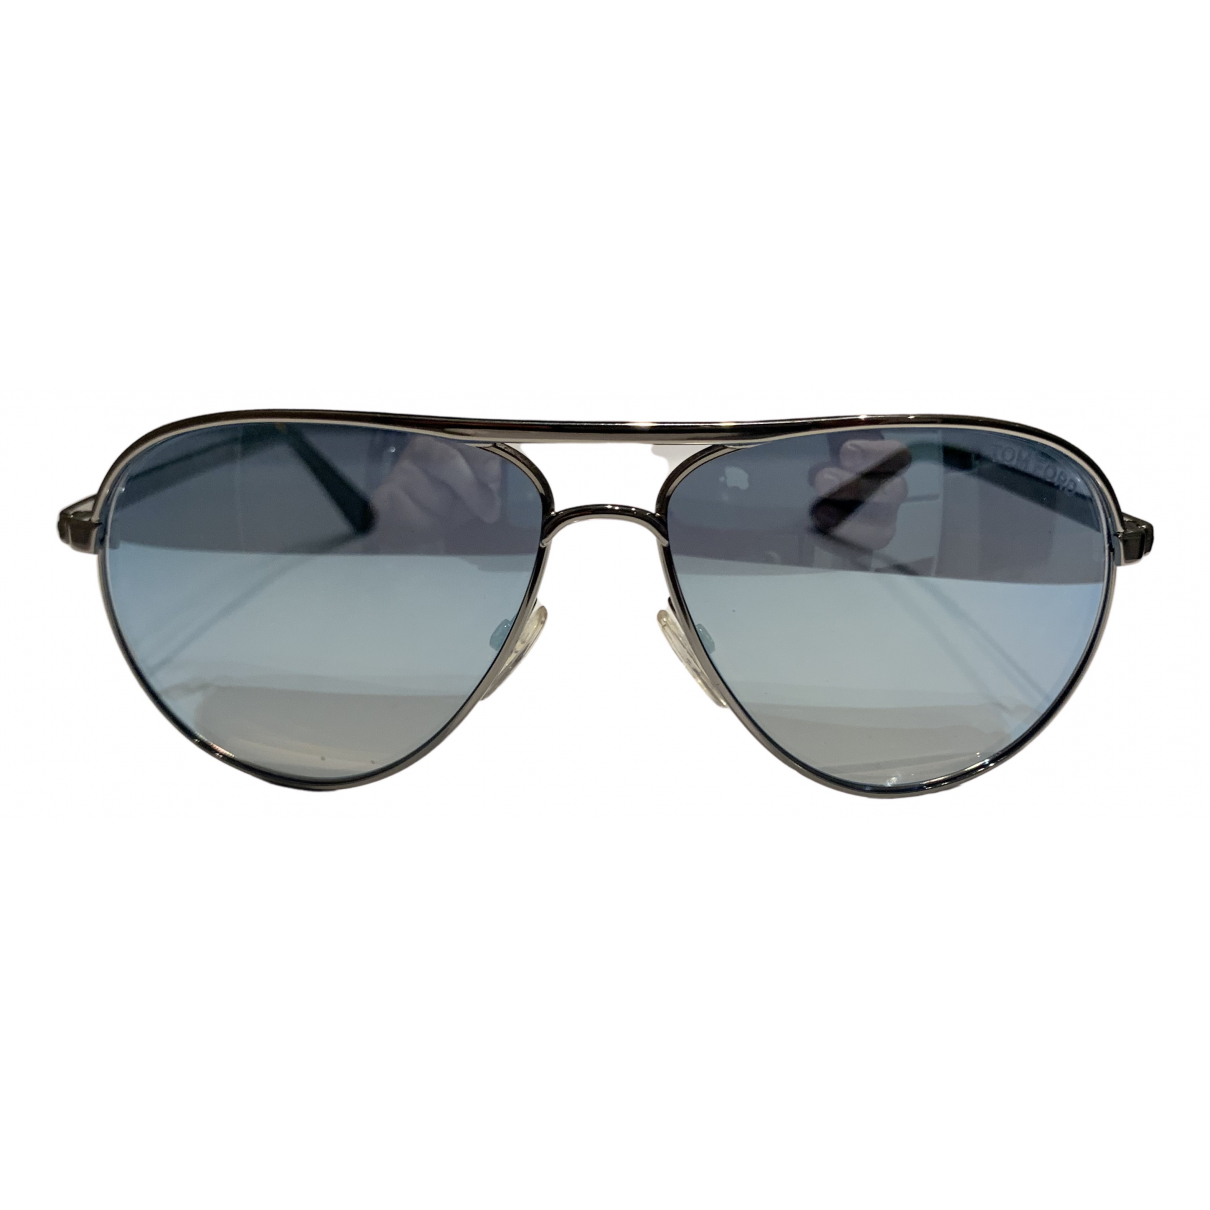 Tom Ford \N Sonnenbrillen in  Silber Metall